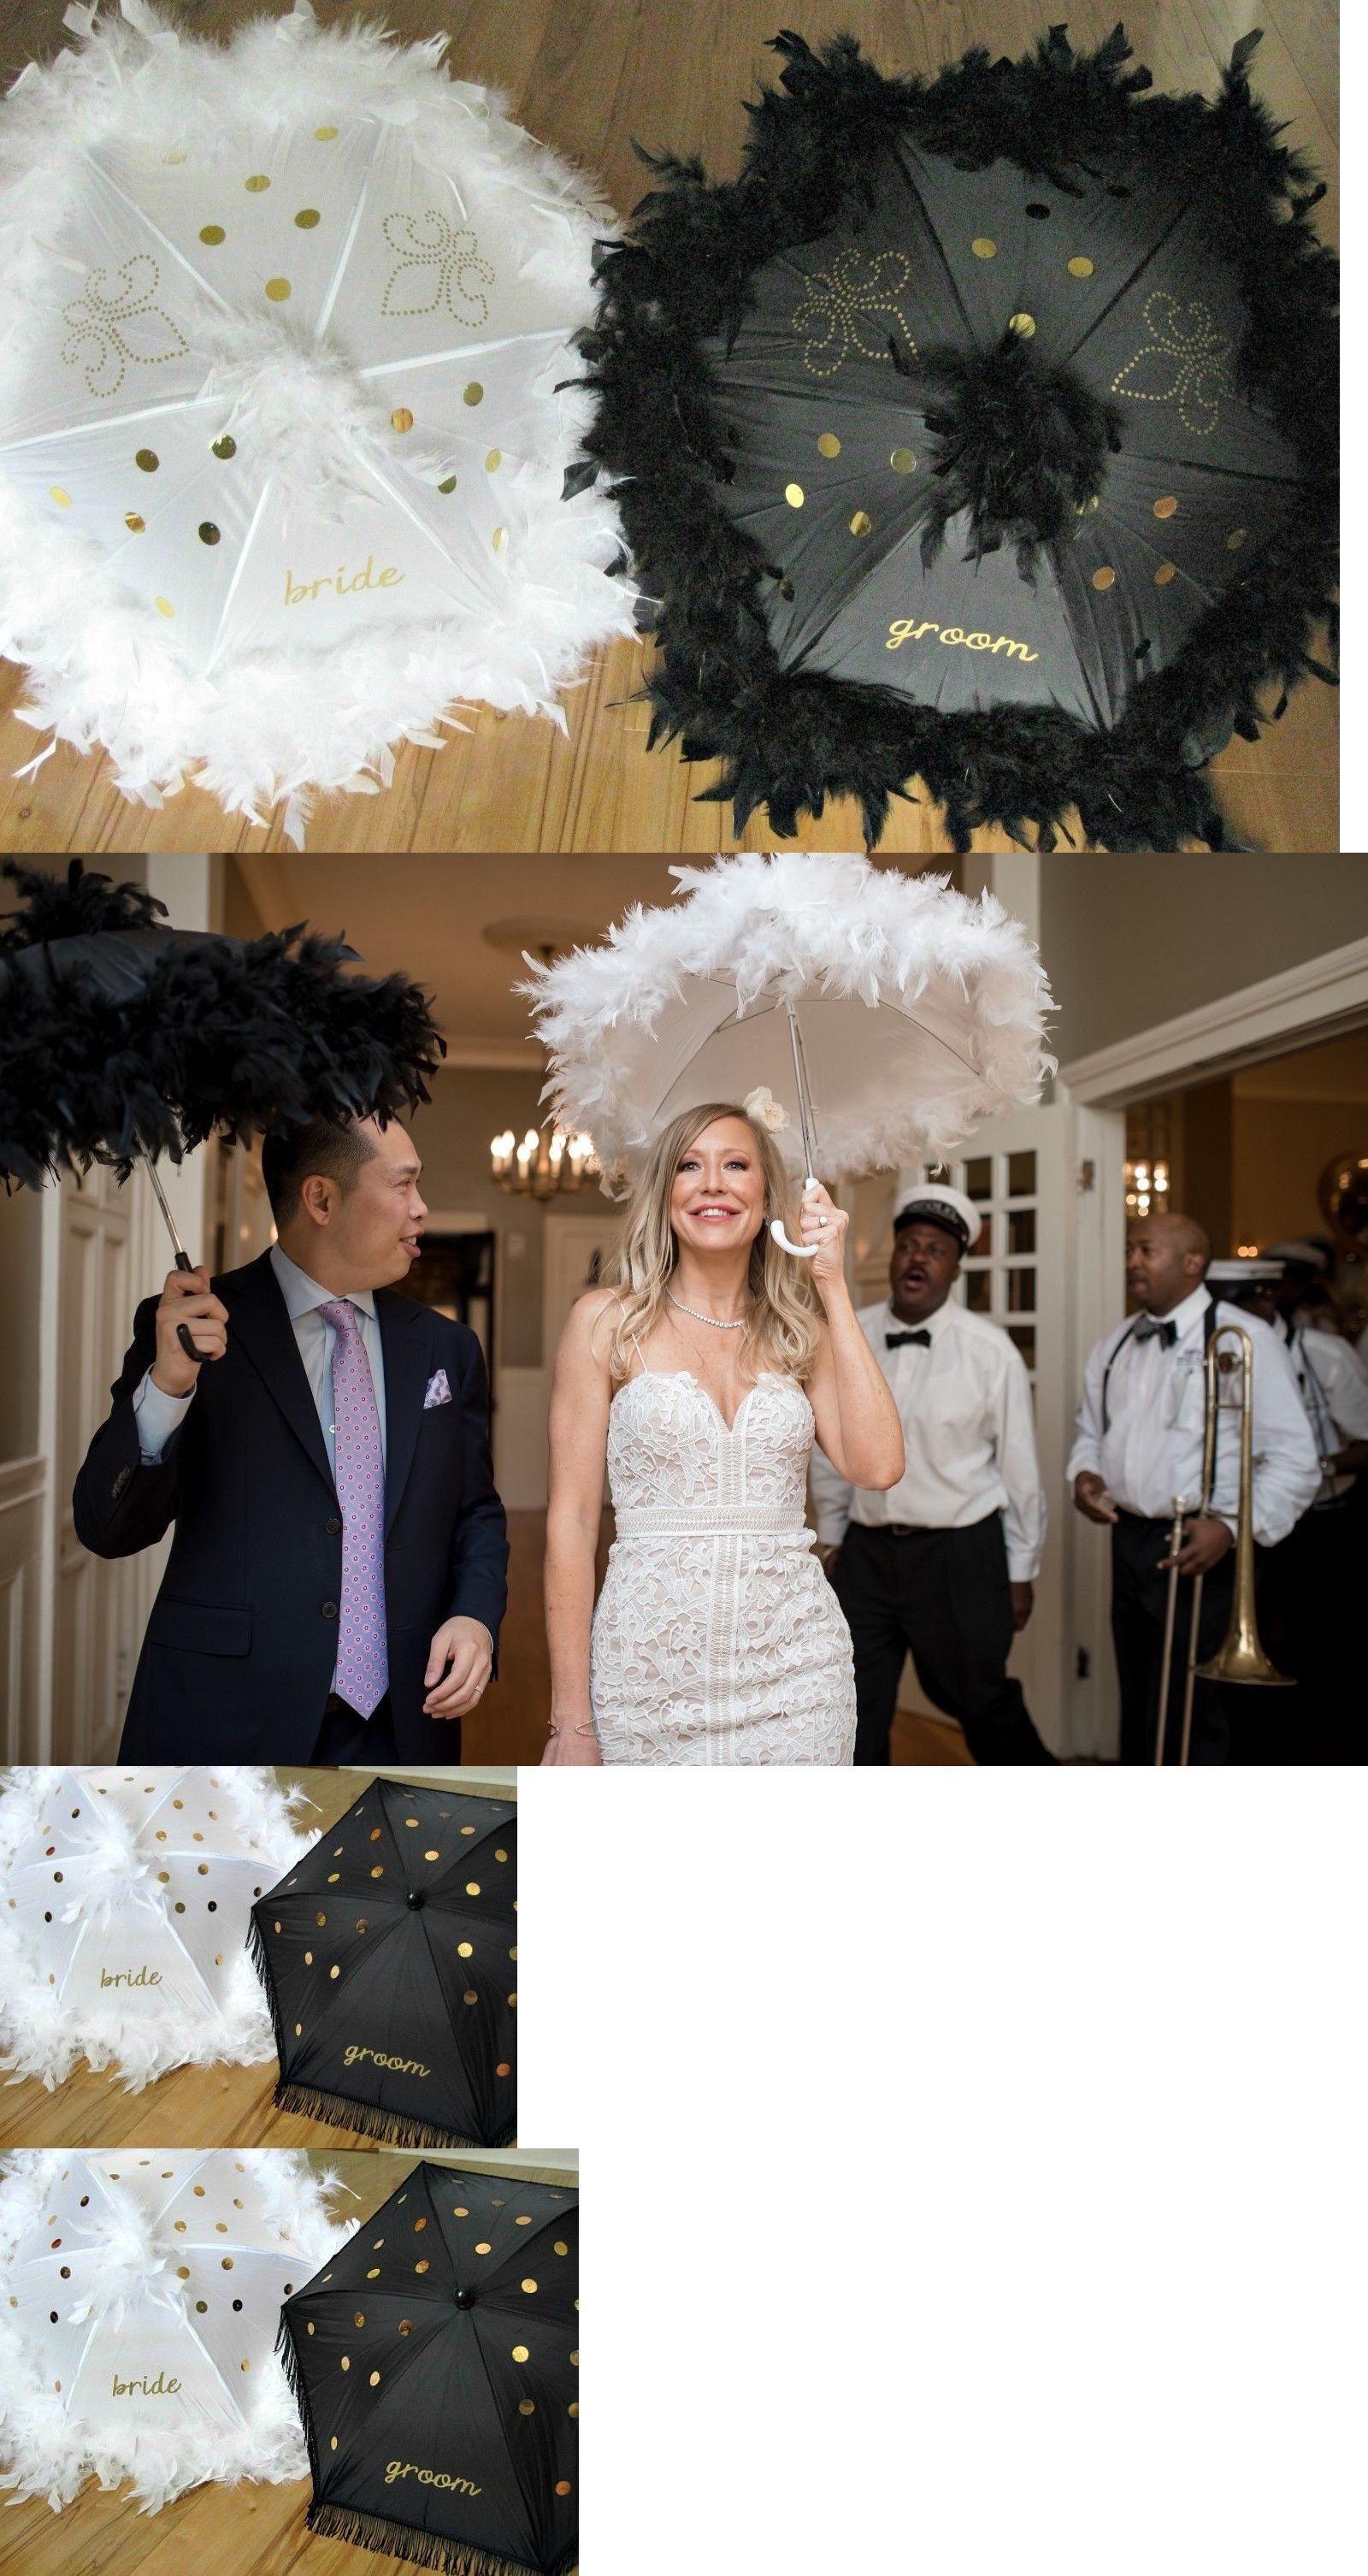 Fans And Parasols 163553 Second Line Umbrellas Bride And Groom Wedding Parasol Set From New Orleans Buy It Now Only 9 Parasol Wedding Wedding Groom Bride